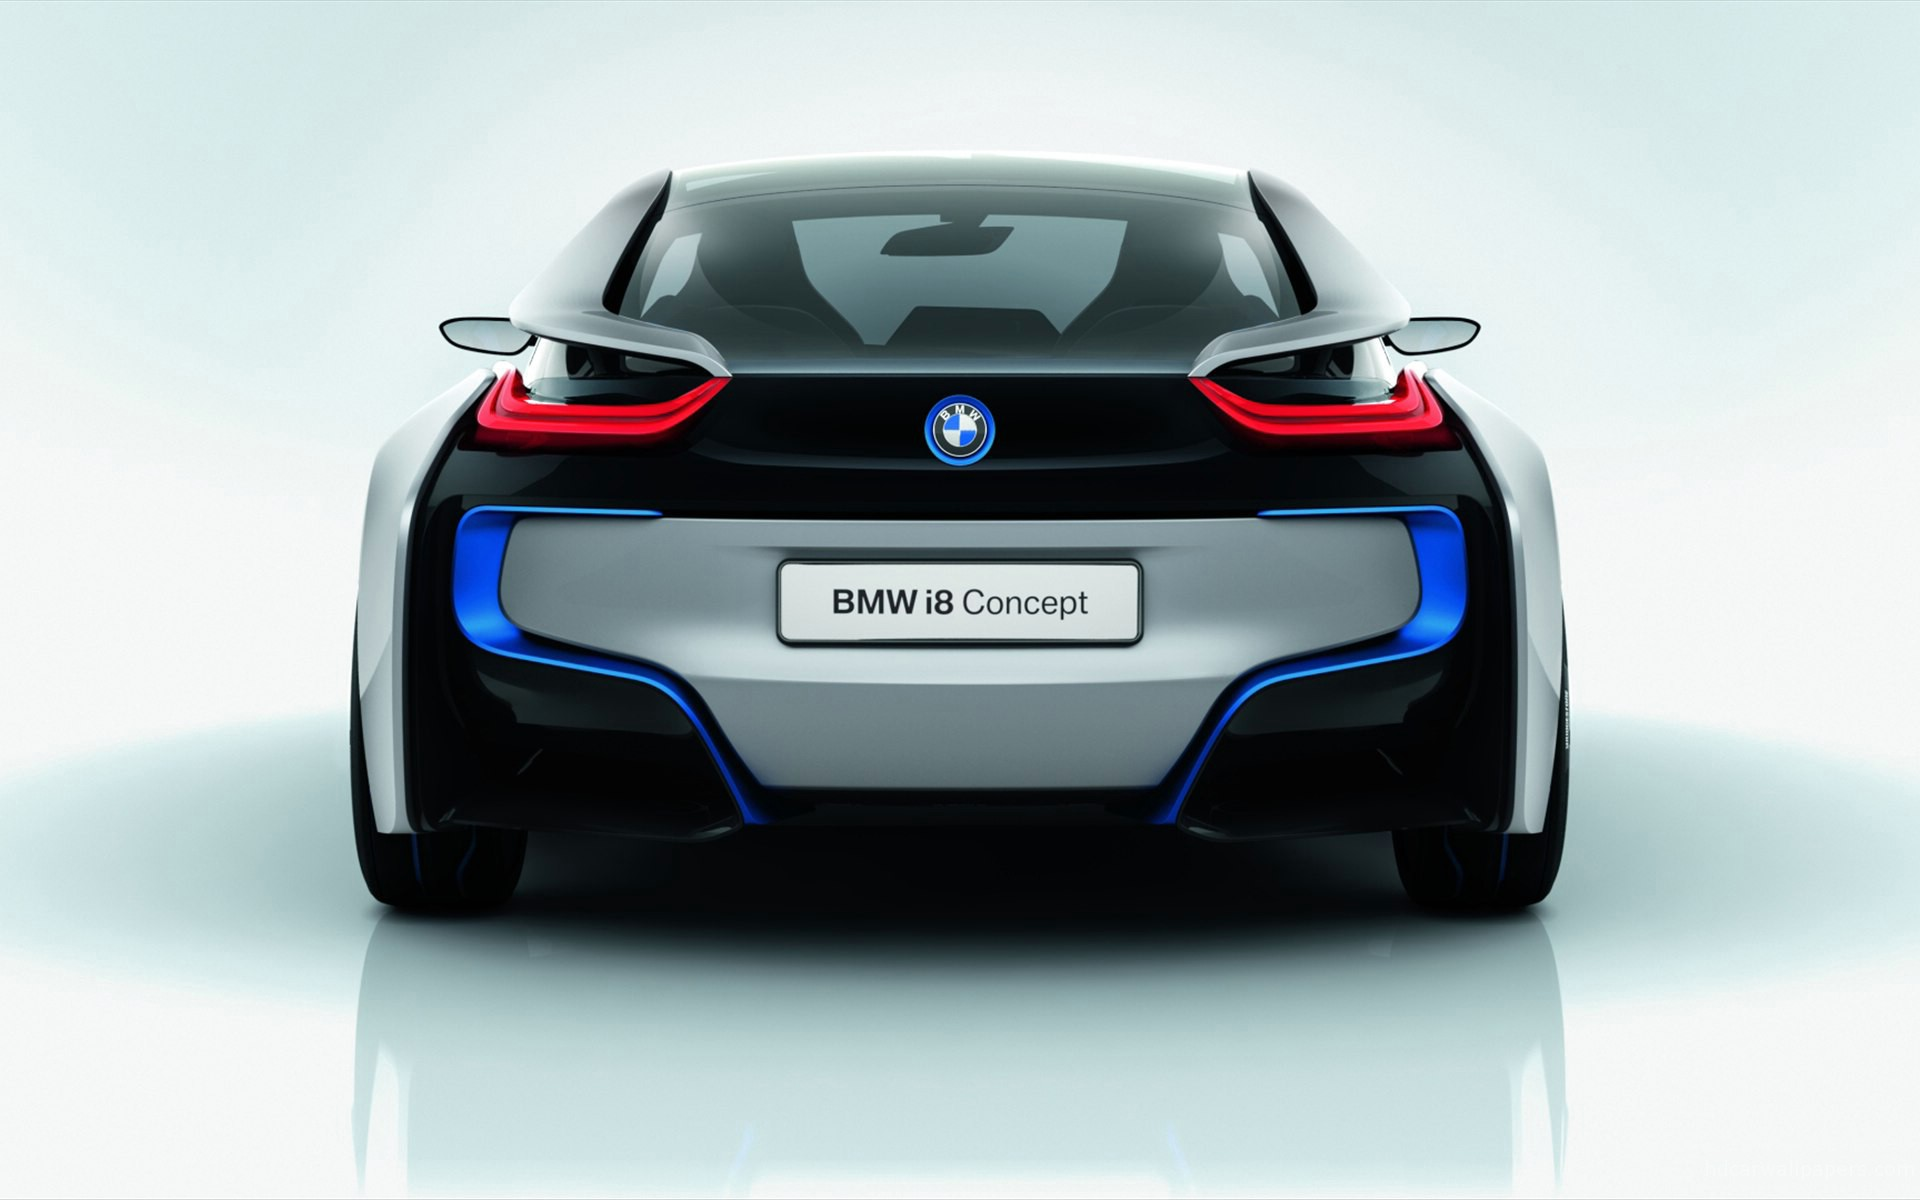 Bmw I Mac Hd Picture Iphone Hires Wallpaper Likegrass White Bmw I